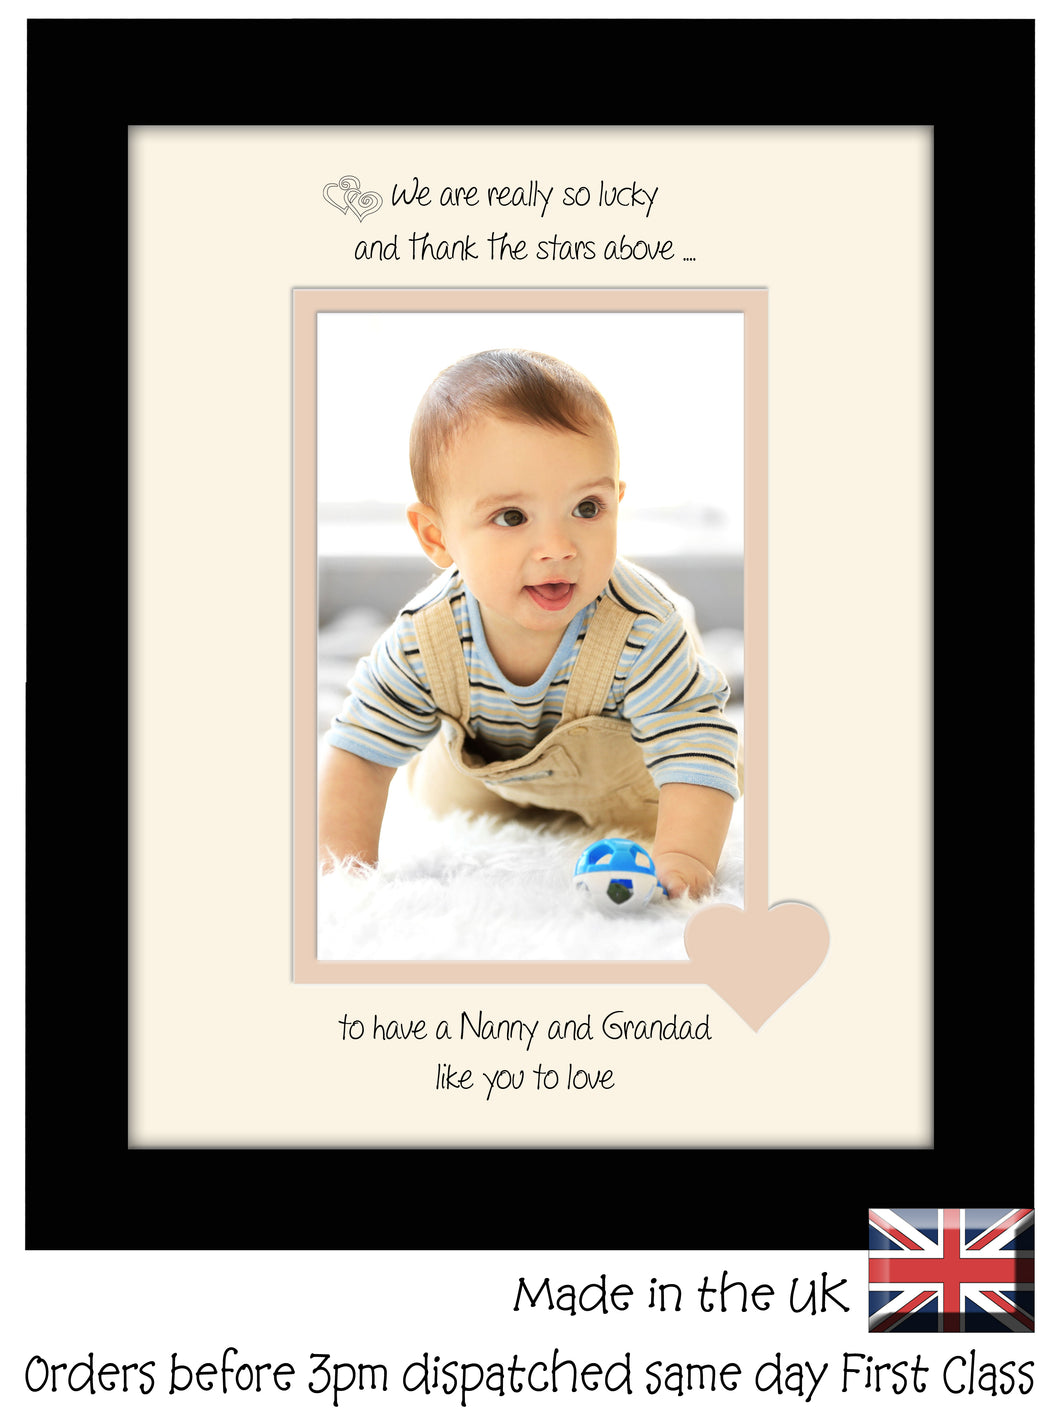 Nanny & Grandad Photo Frame - We Thank the stars Nanny and Grandad Portrait photo frame 6